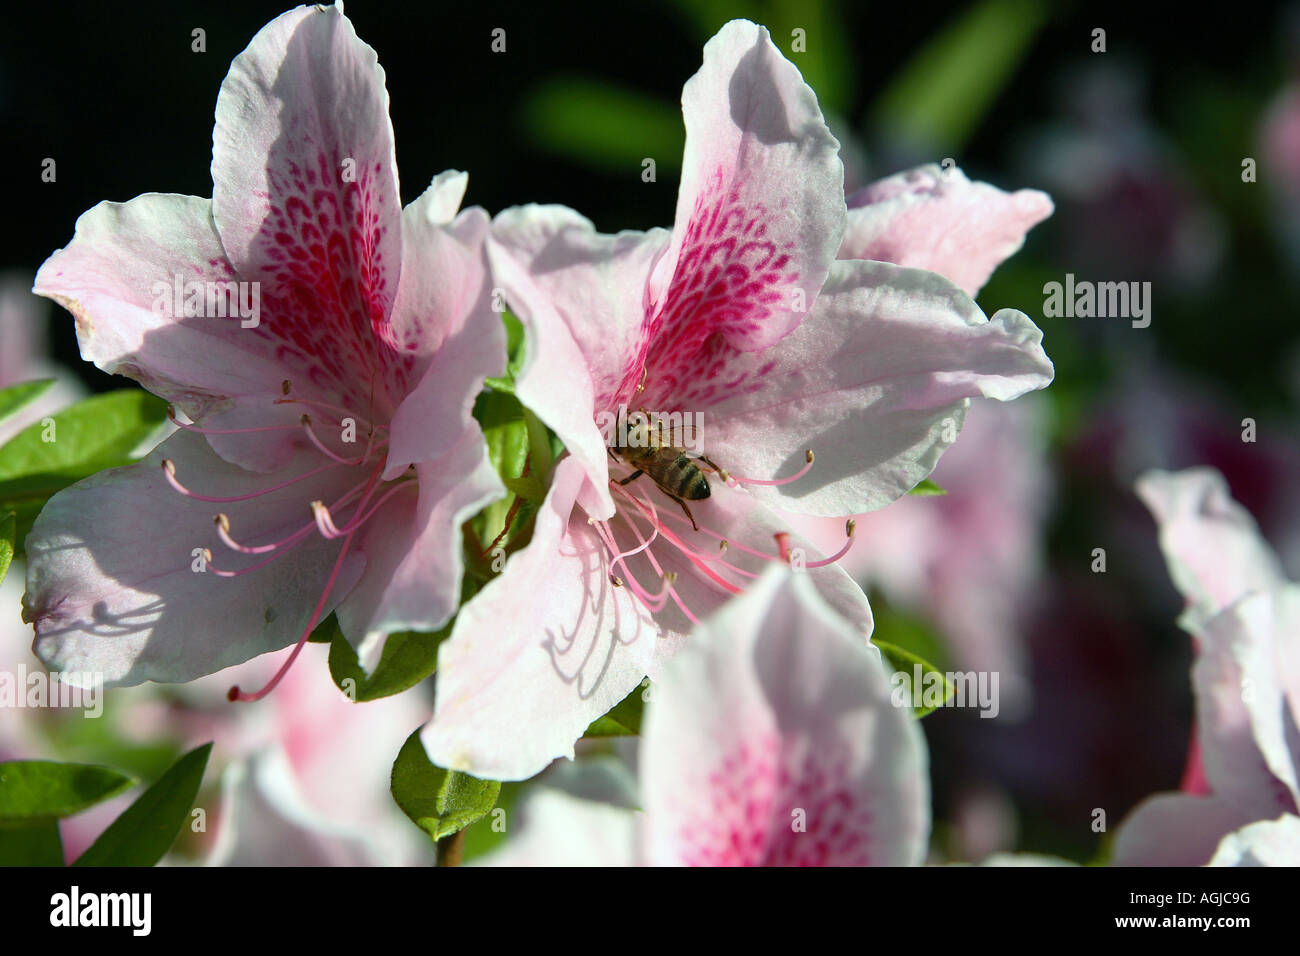 Flowers that bloom in the winter - Pink And Purple Flowers Bloom After Late Winter Rains In Northern California A Honey Bee Takes